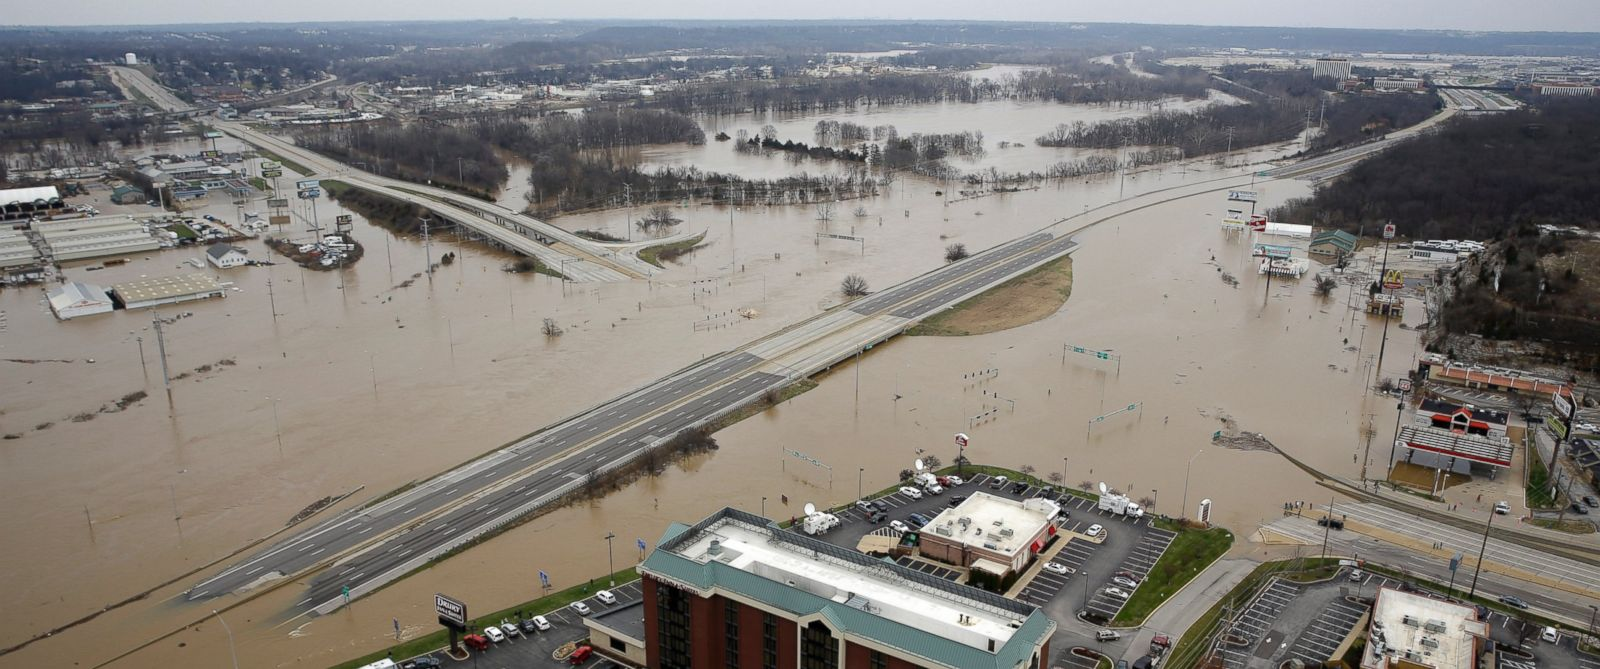 22 Dead 2 Missing In Record Flooding Across Midwest Abc